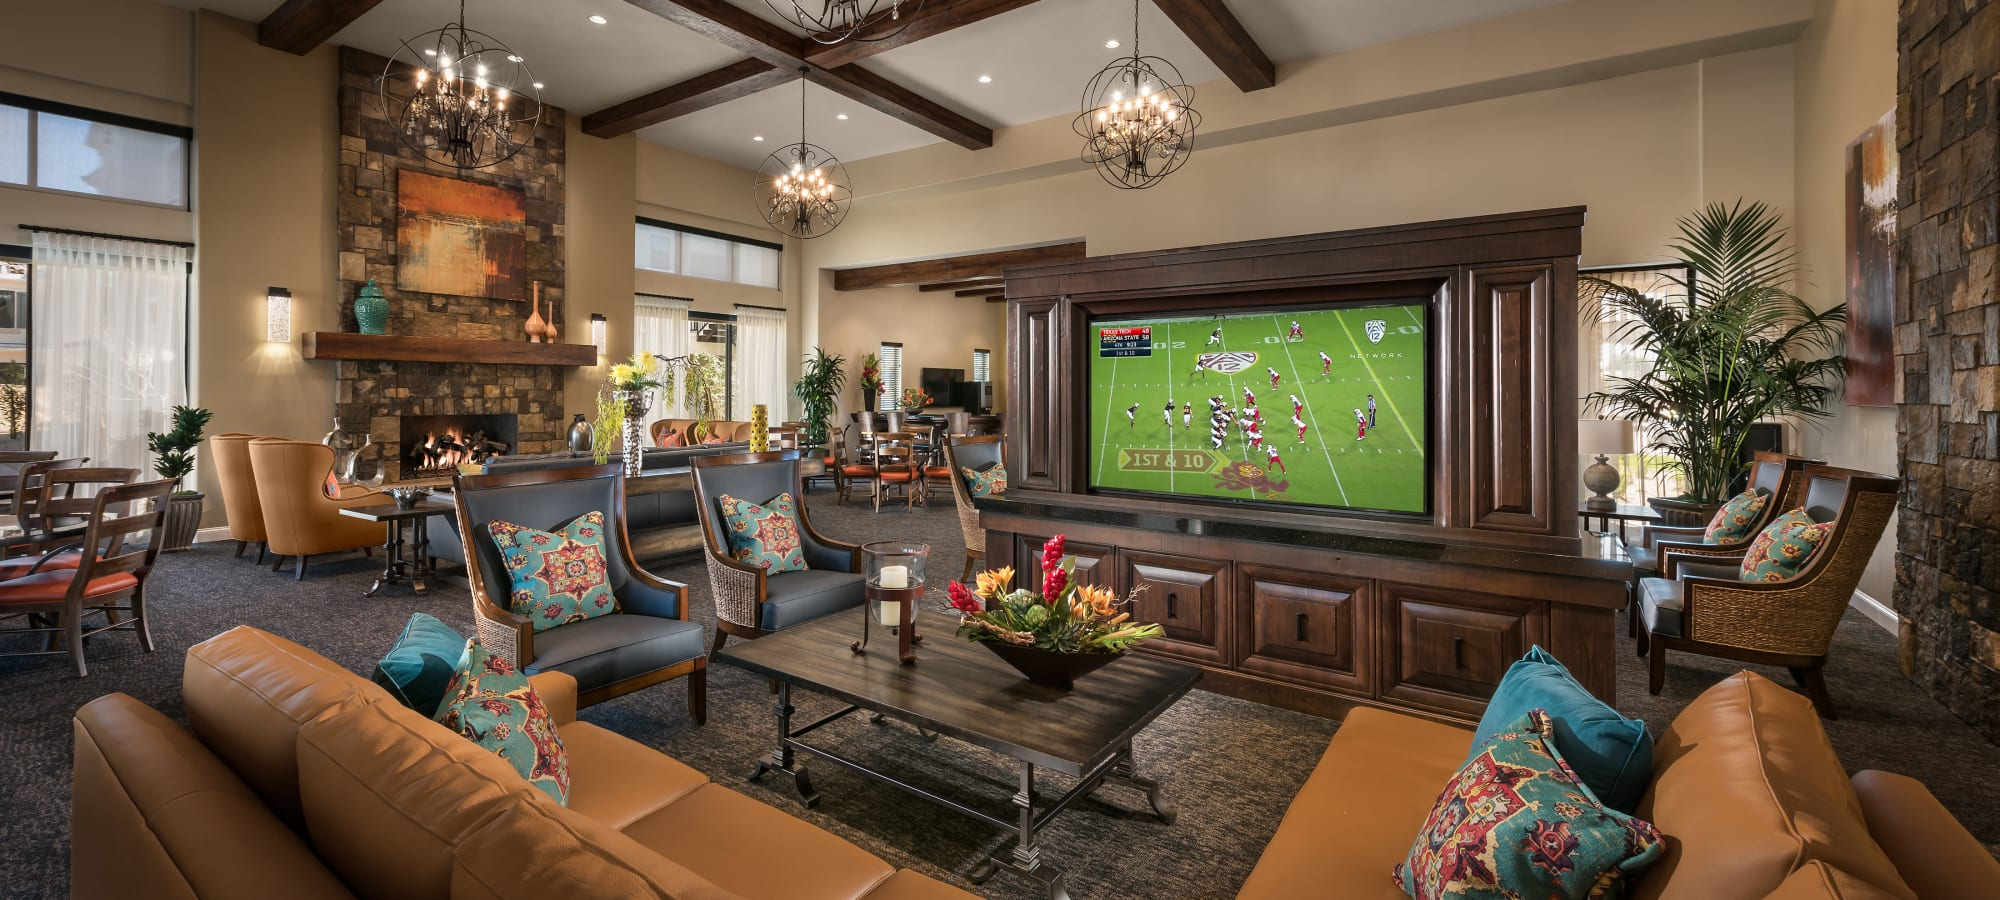 Clubhouse at San Artes in Scottsdale, Arizona